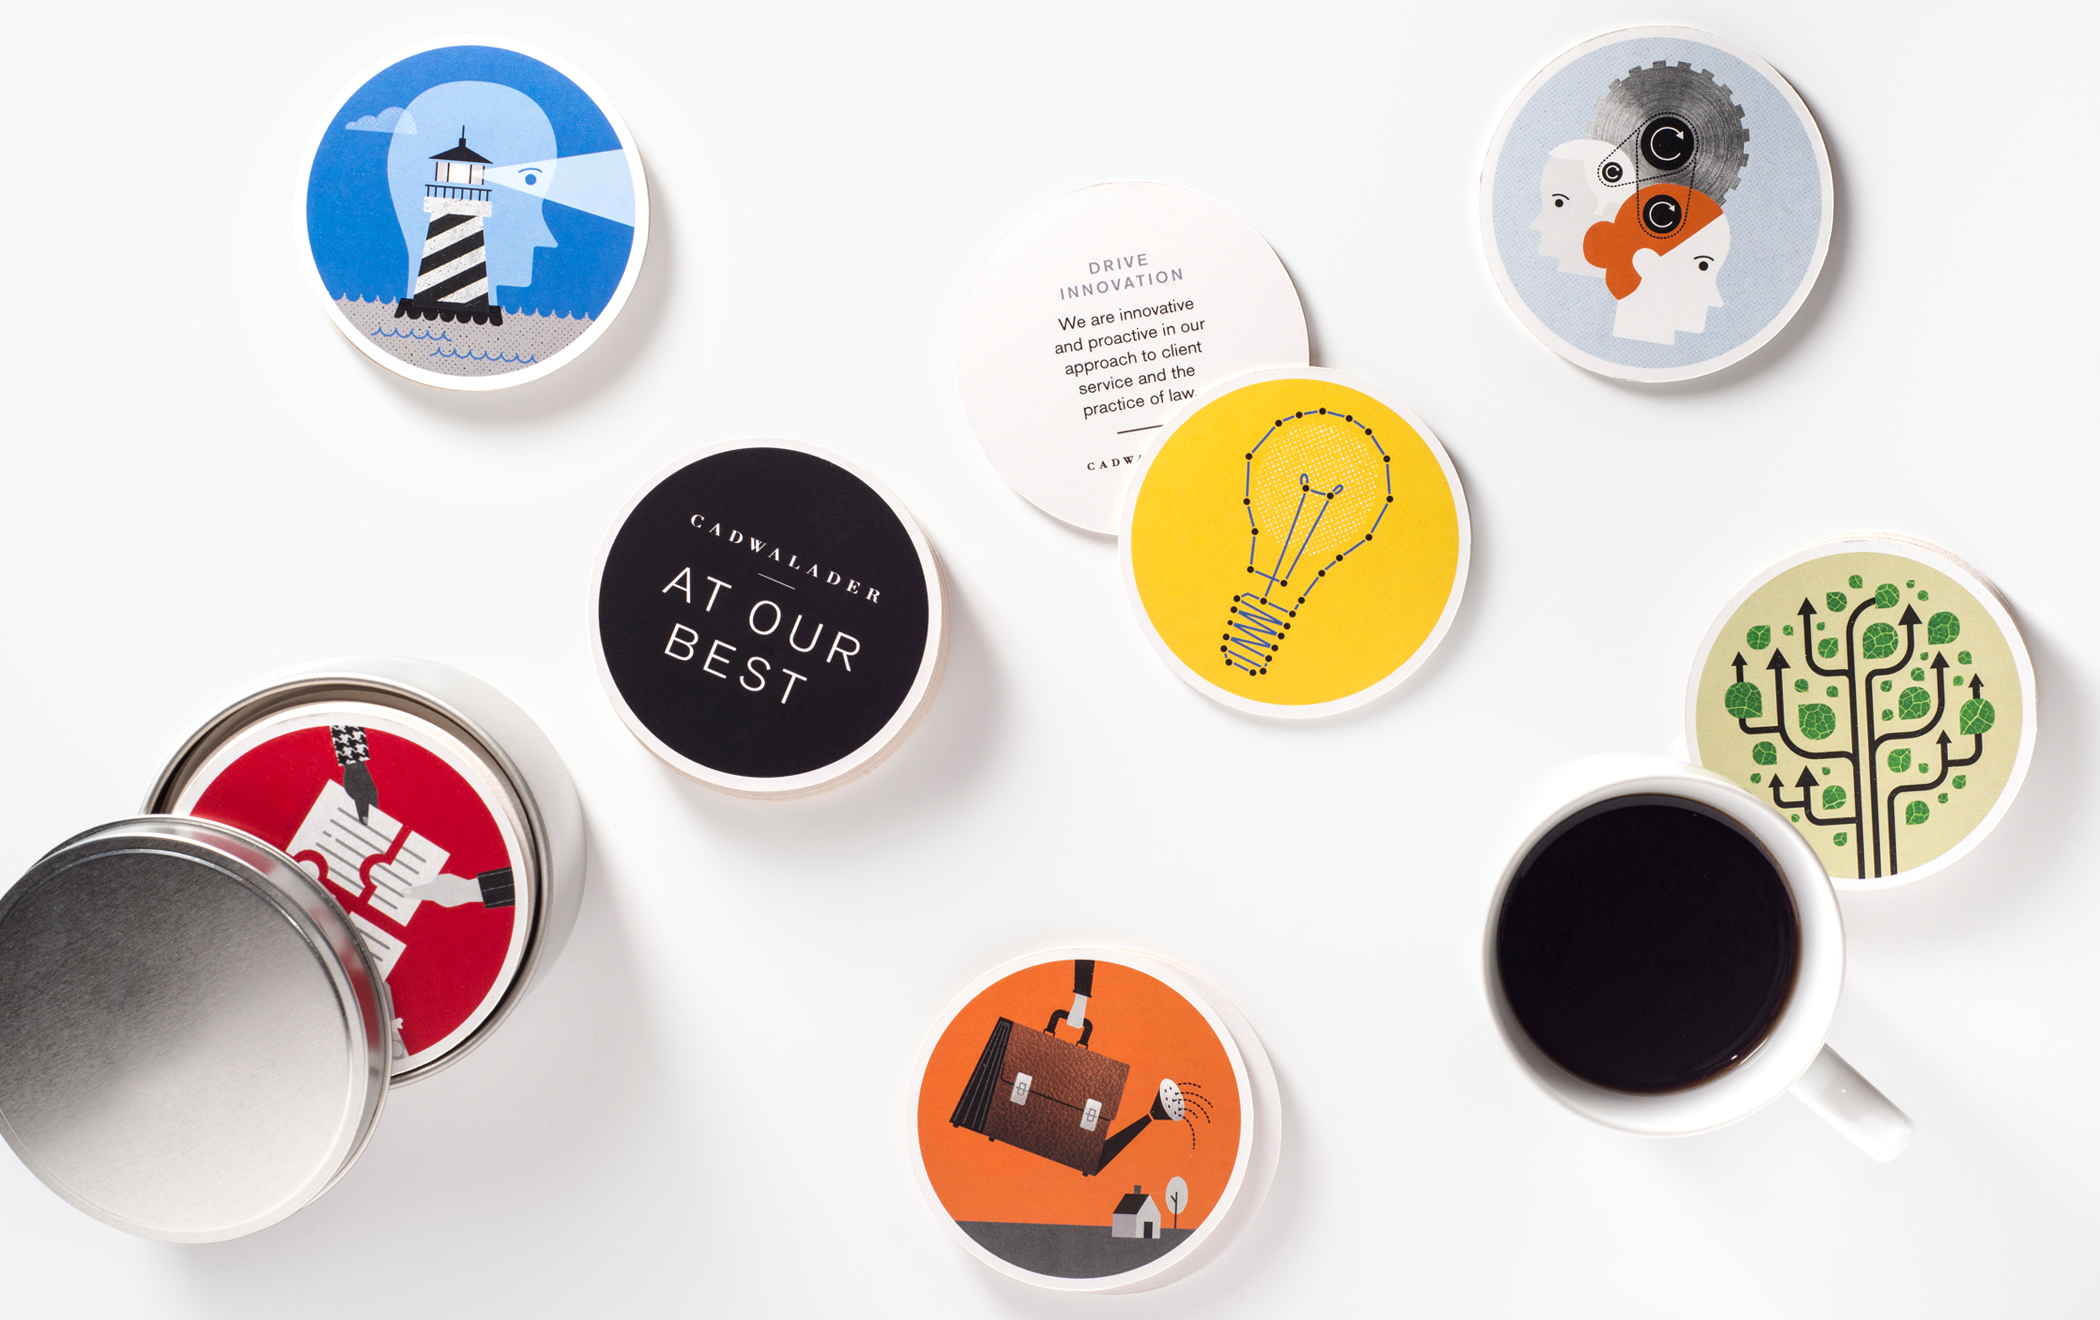 """Several drink coasters with illustrationa the message """"At our best"""" and """"Drive innovation scattered on a tabletop."""